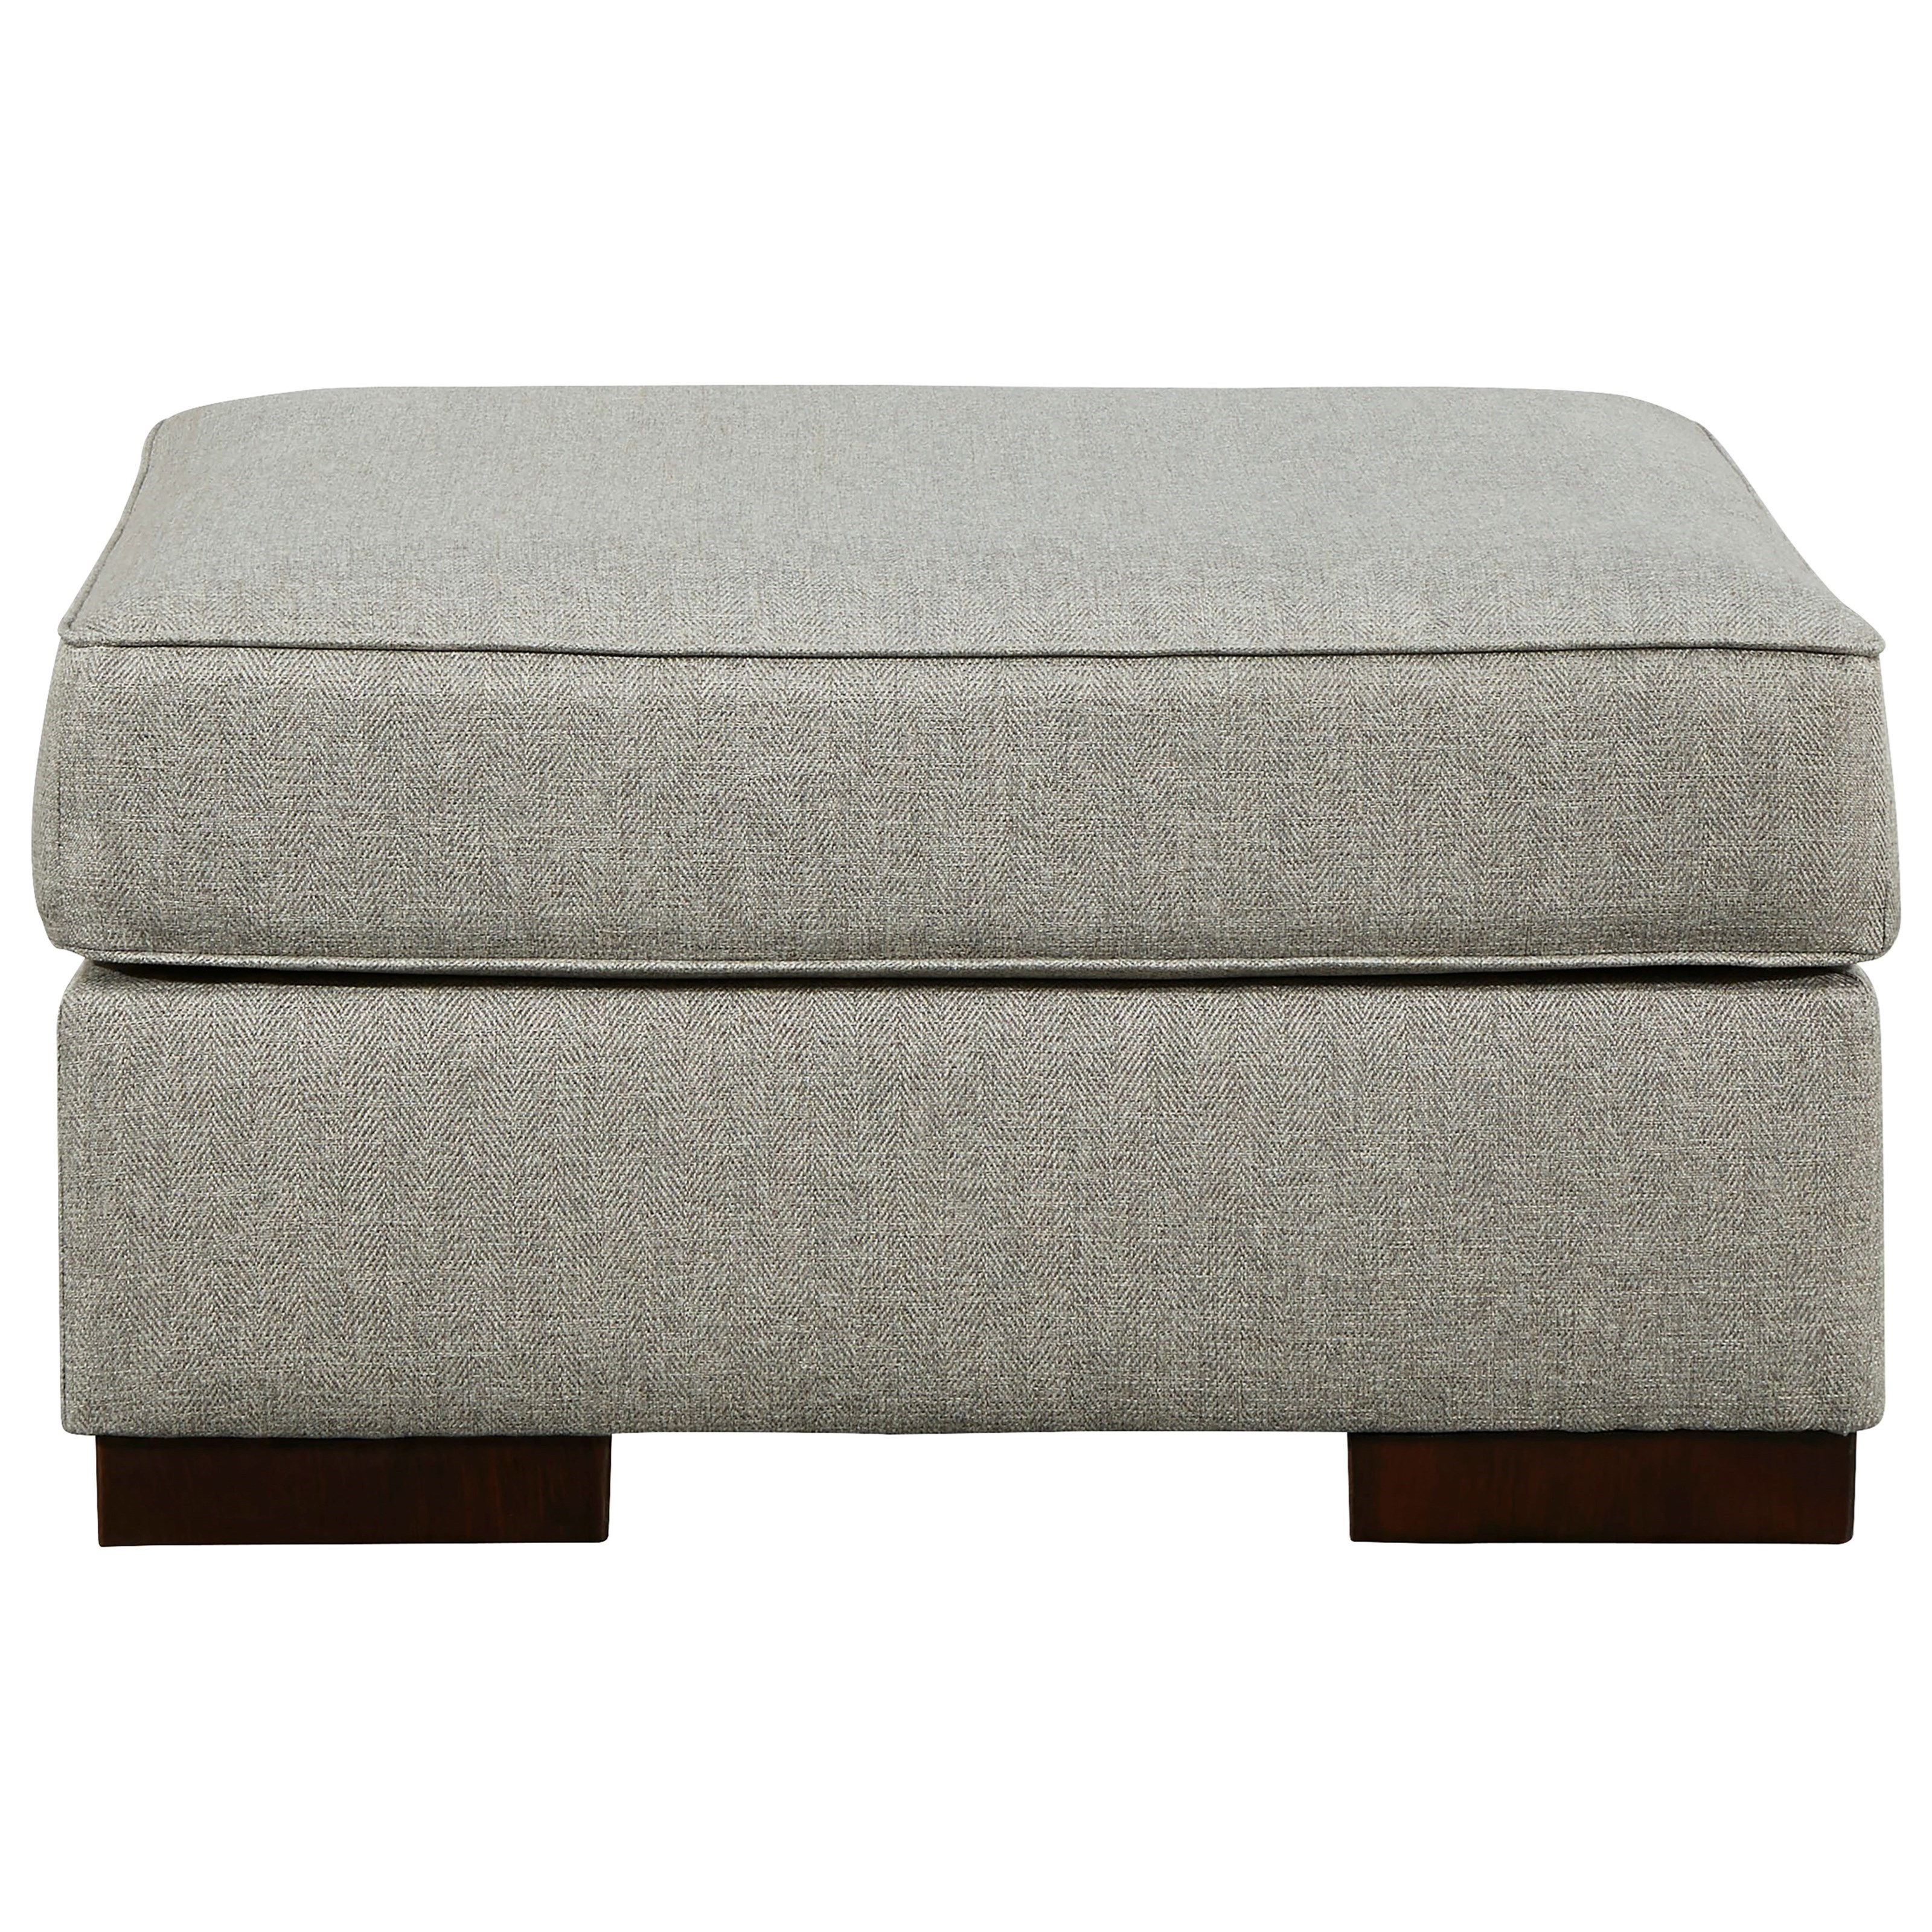 Marsing Nuvella Oversized Accent Ottoman by Benchcraft at Northeast Factory Direct